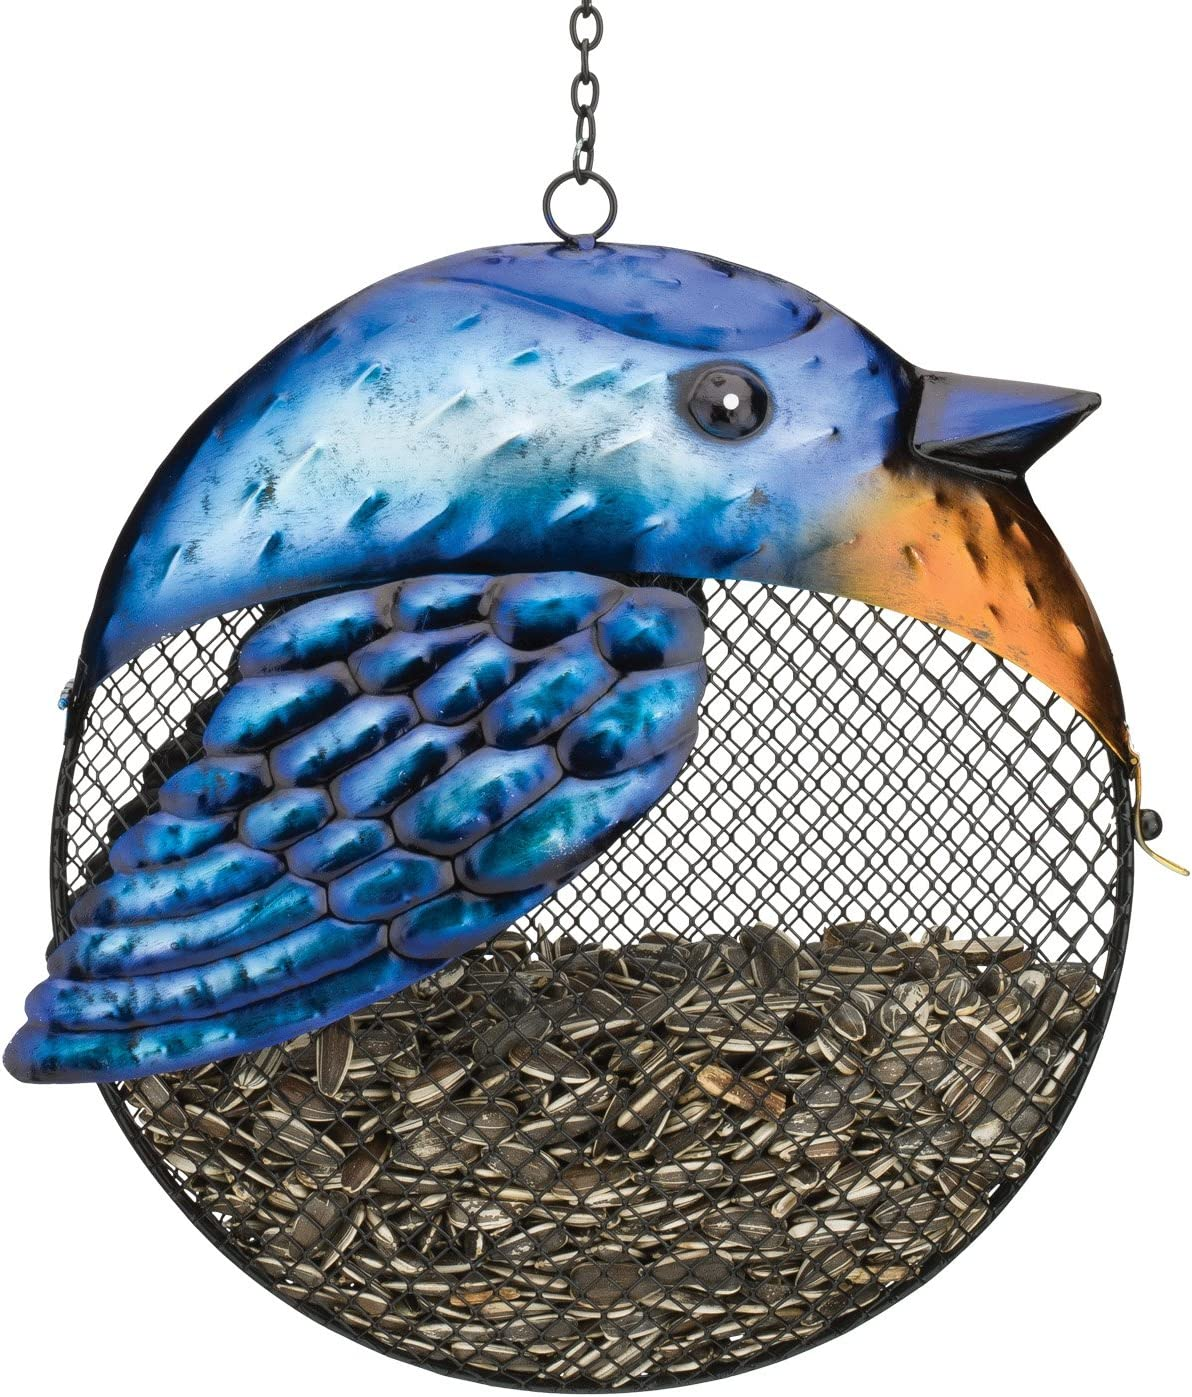 Regal Art & Gift Blue Jay Fat Bird Seed Feeder Holds 1 Pound of Seed